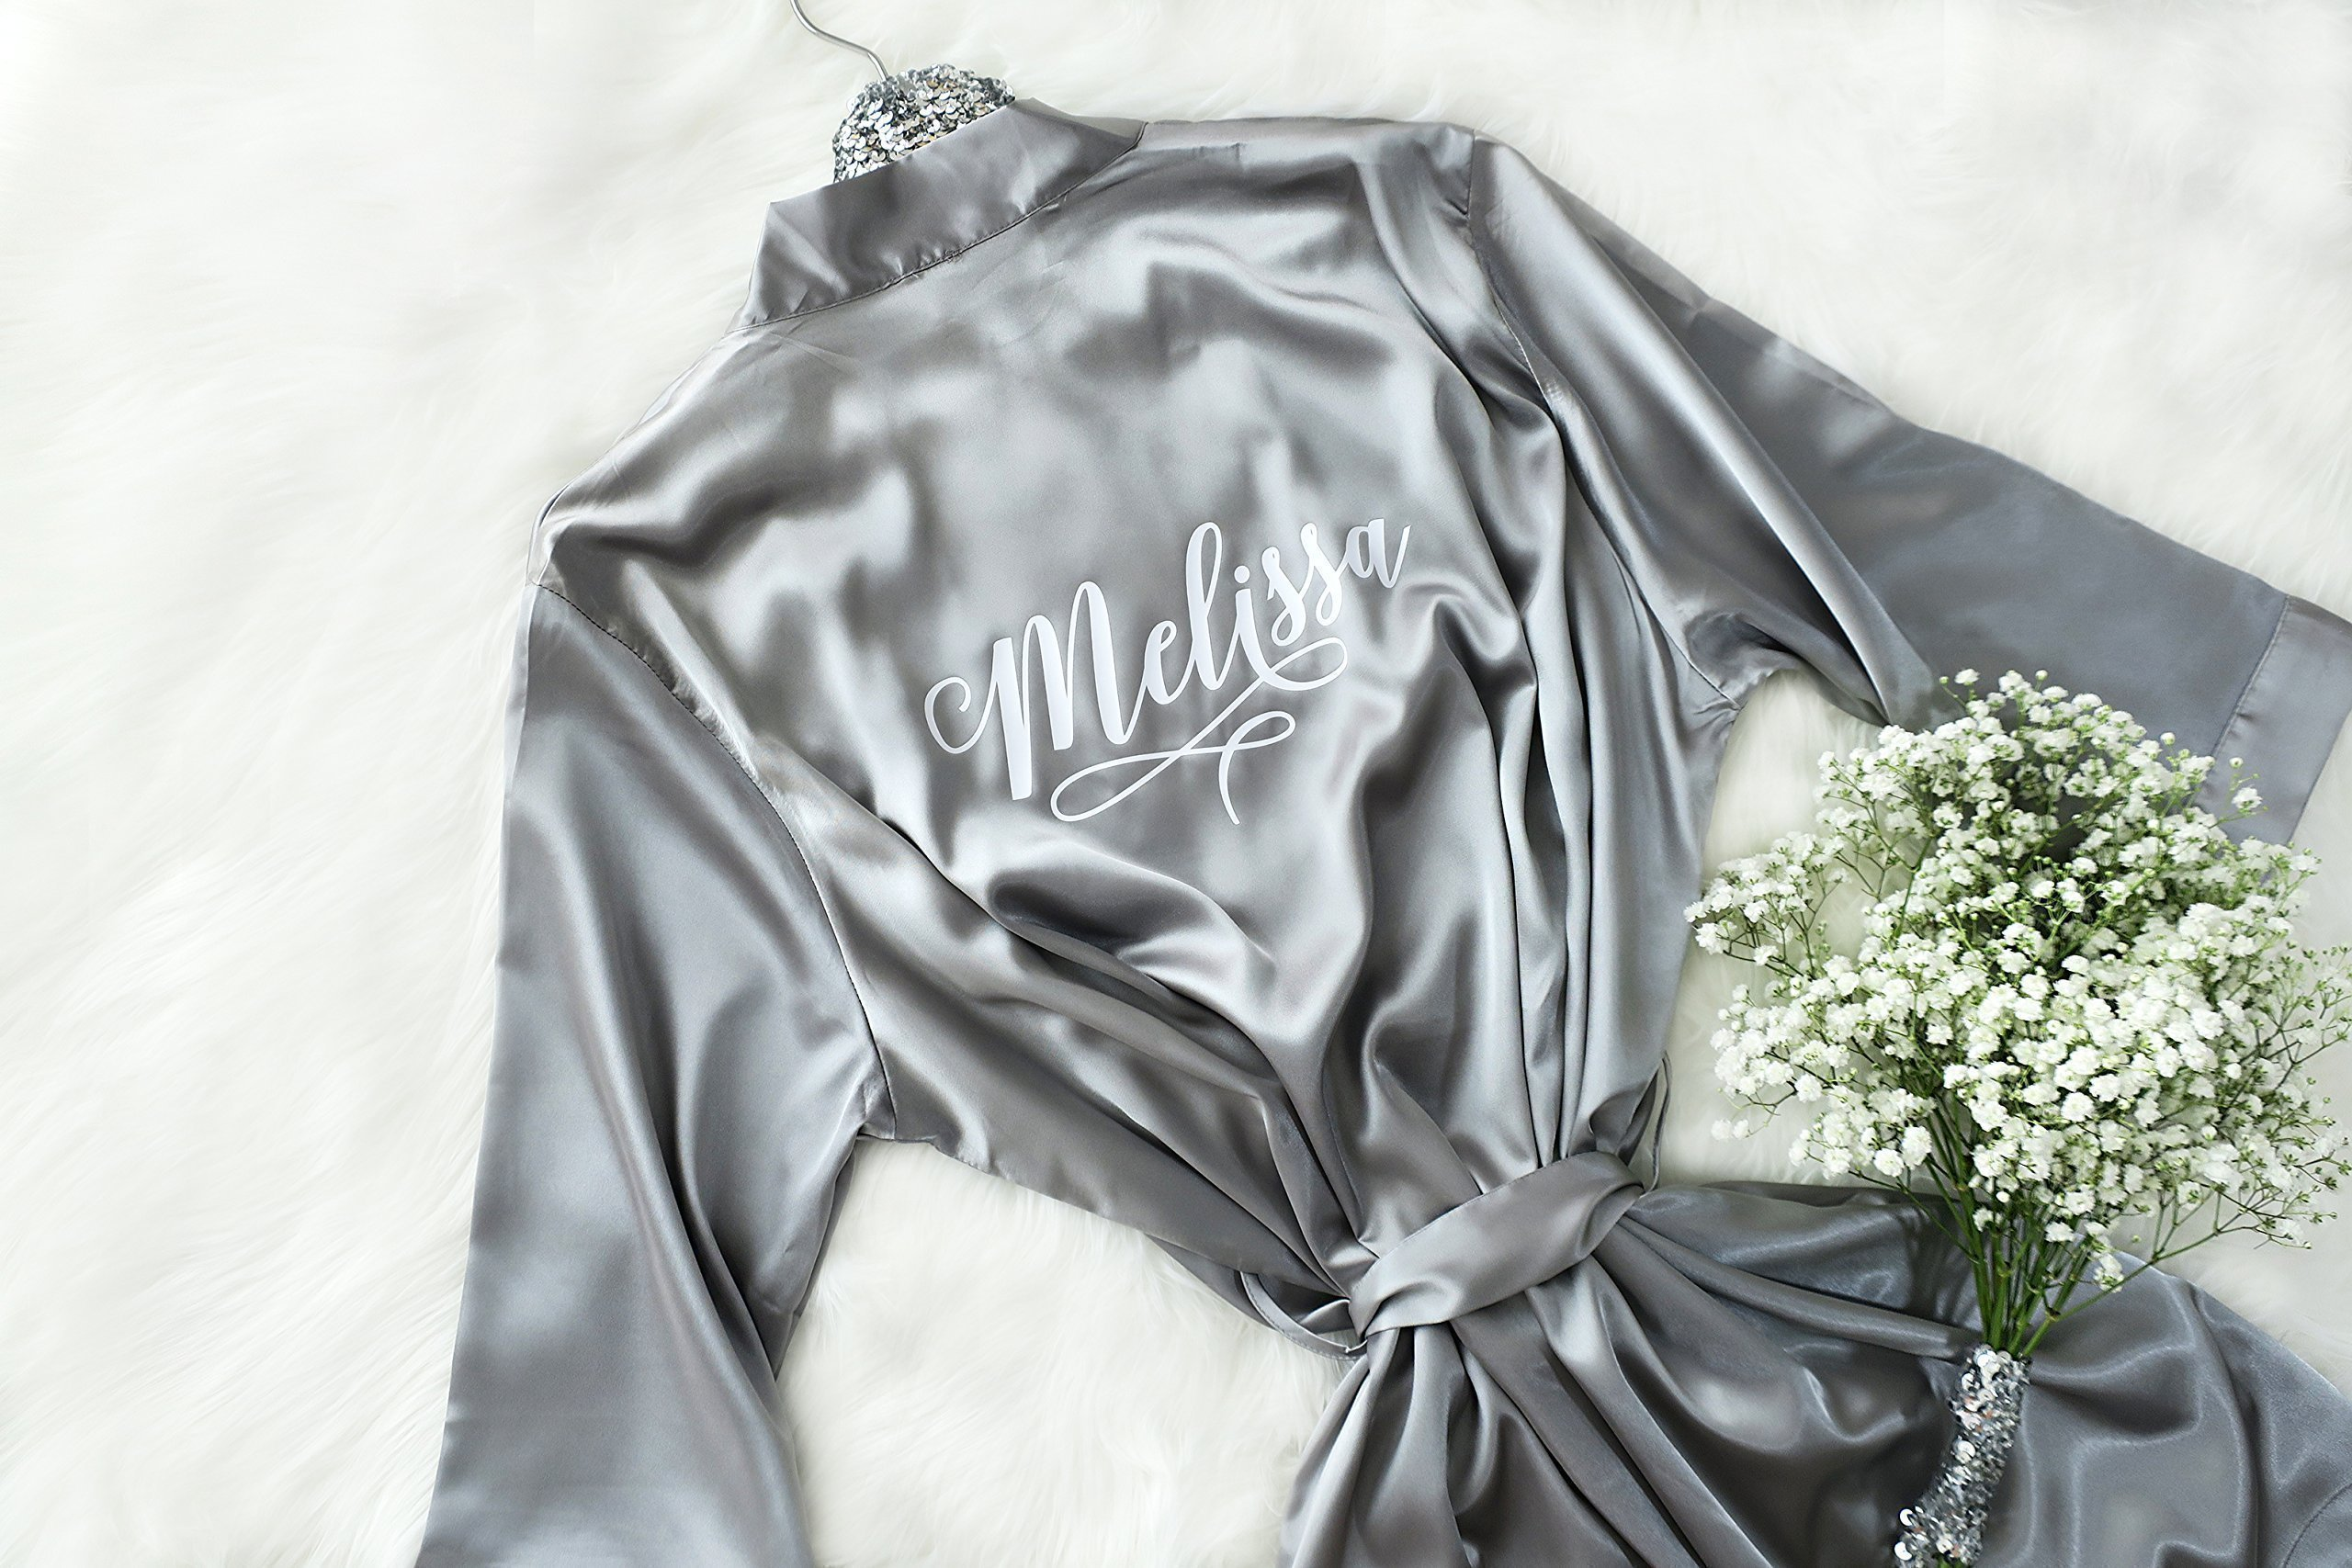 Joy Mabelle Women's robes short silky satin kimono style solid colors with personalized name for bridesmaids and brides